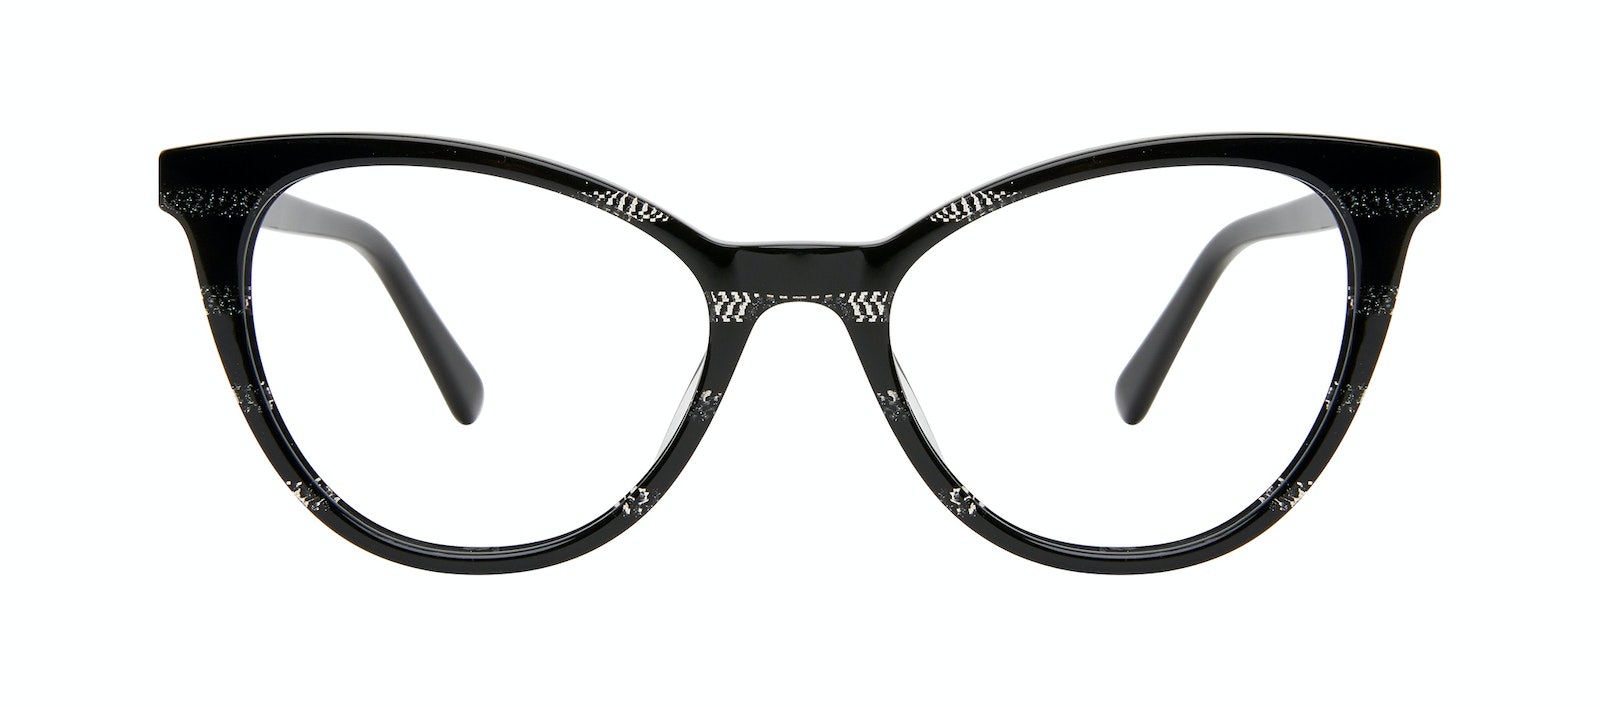 Affordable Fashion Glasses Cat Eye Eyeglasses Women Victoire M Night Front